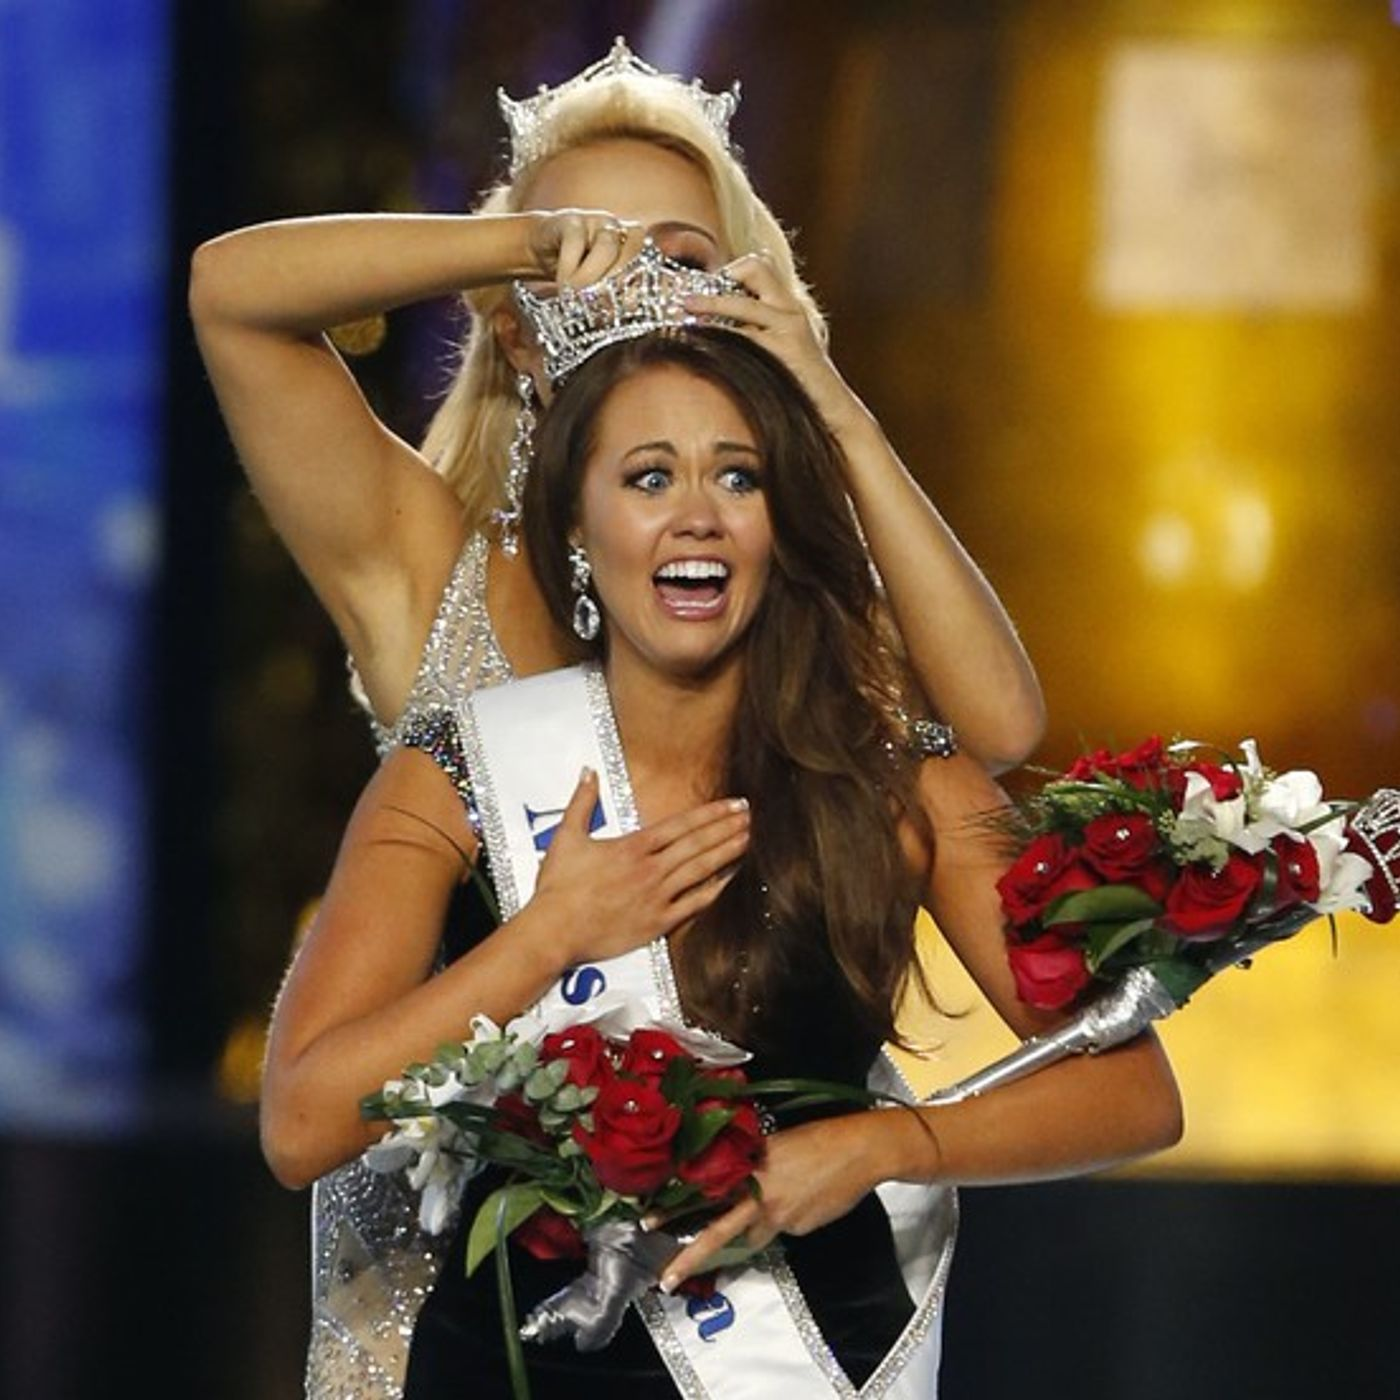 No Bikinis on Miss America???